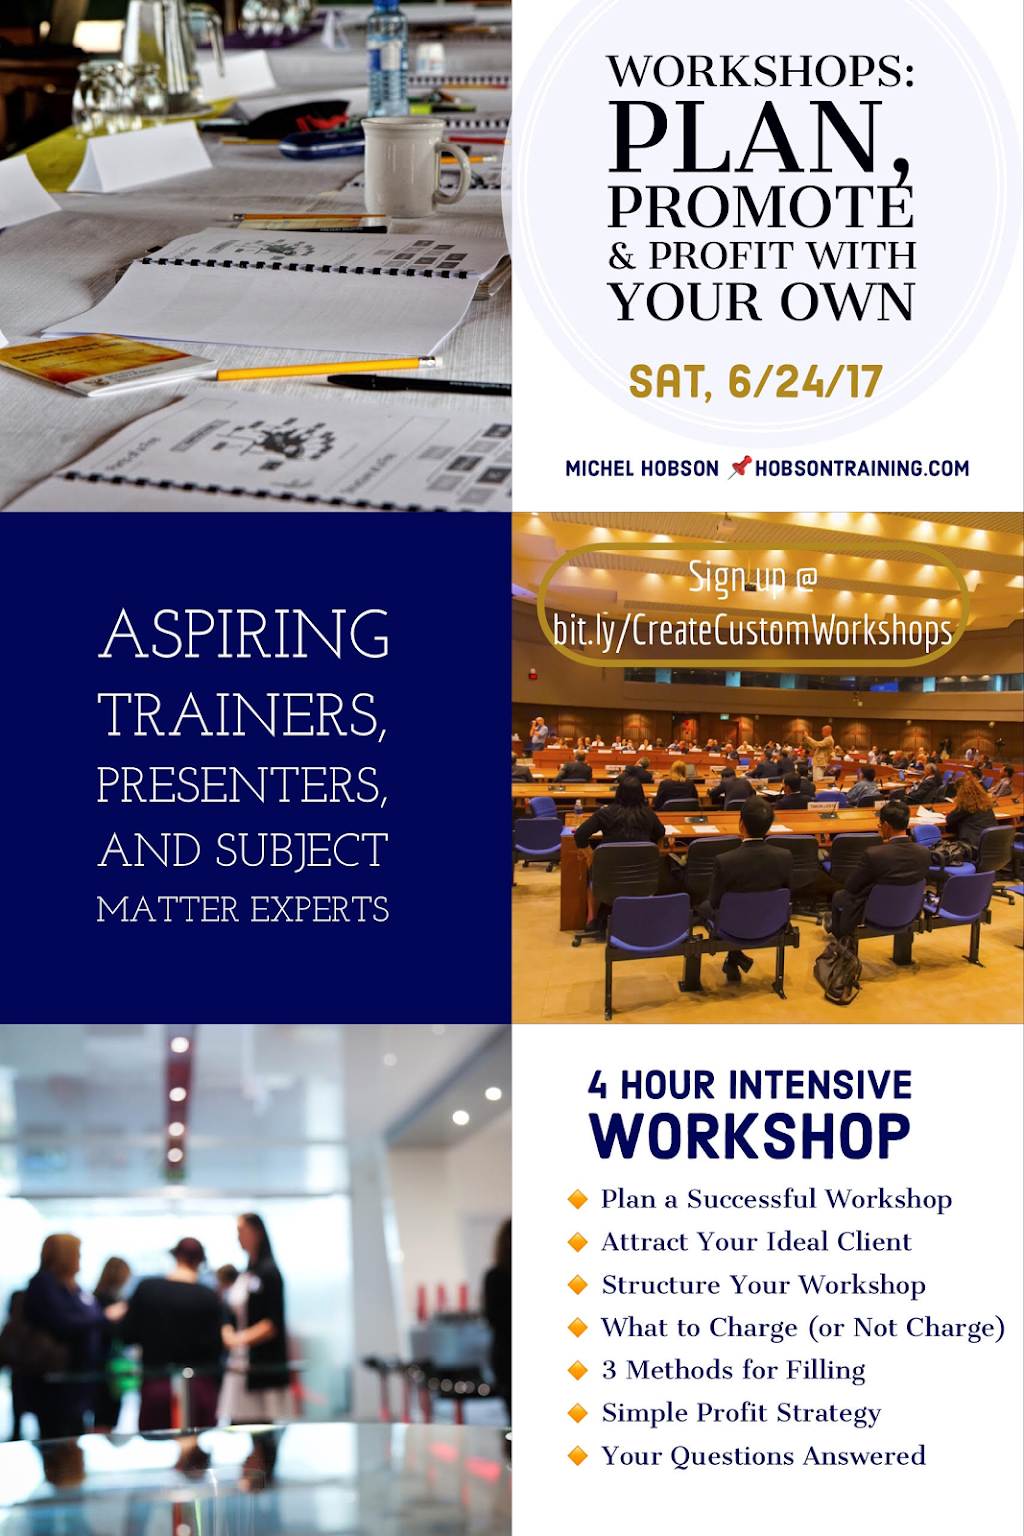 Workshops: Plan, Promote & Profit With Your Own